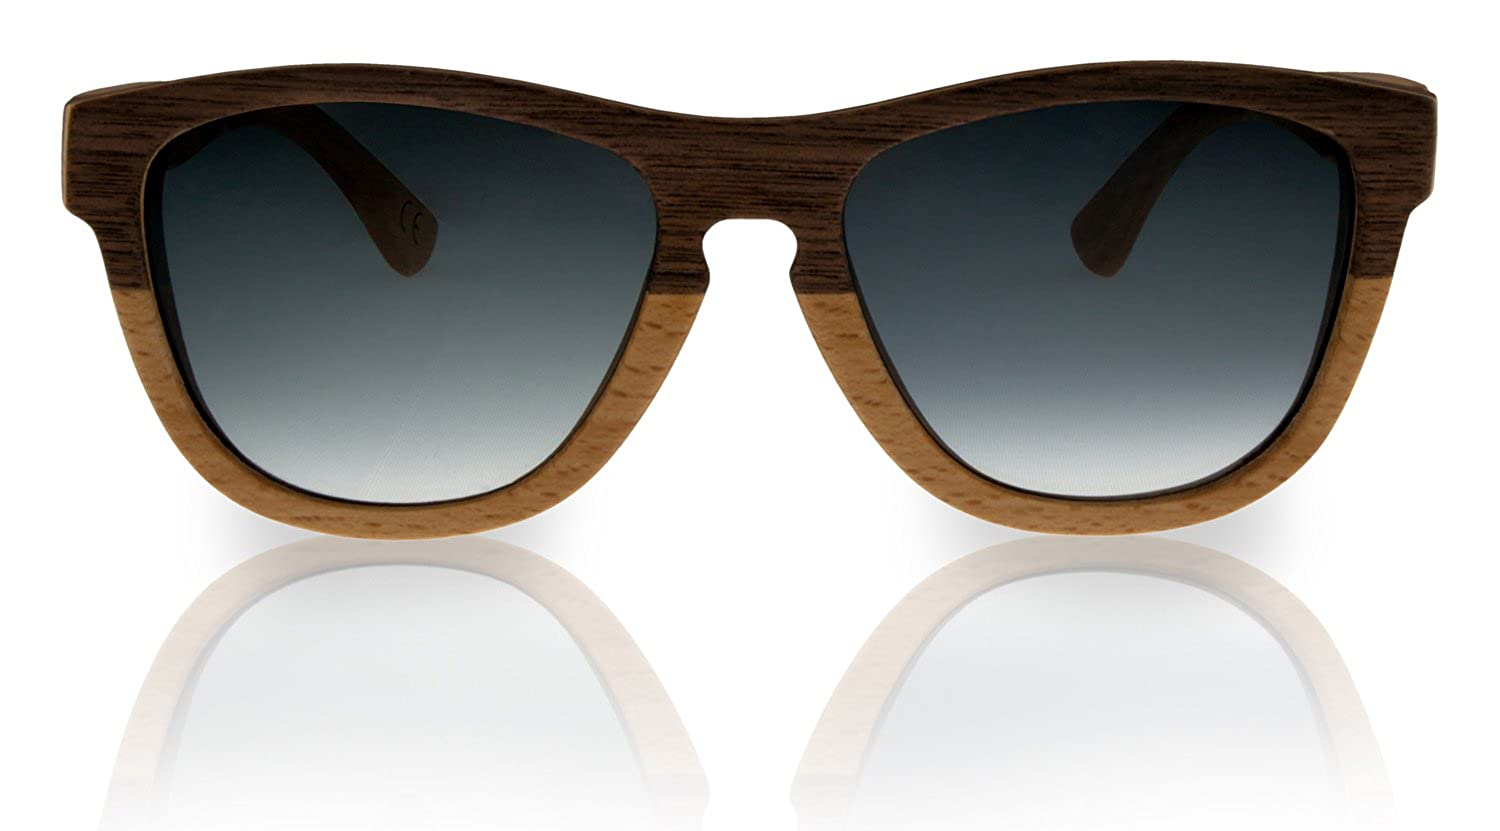 Holz Sonnenbrille Overseer Swing ddpeI1r